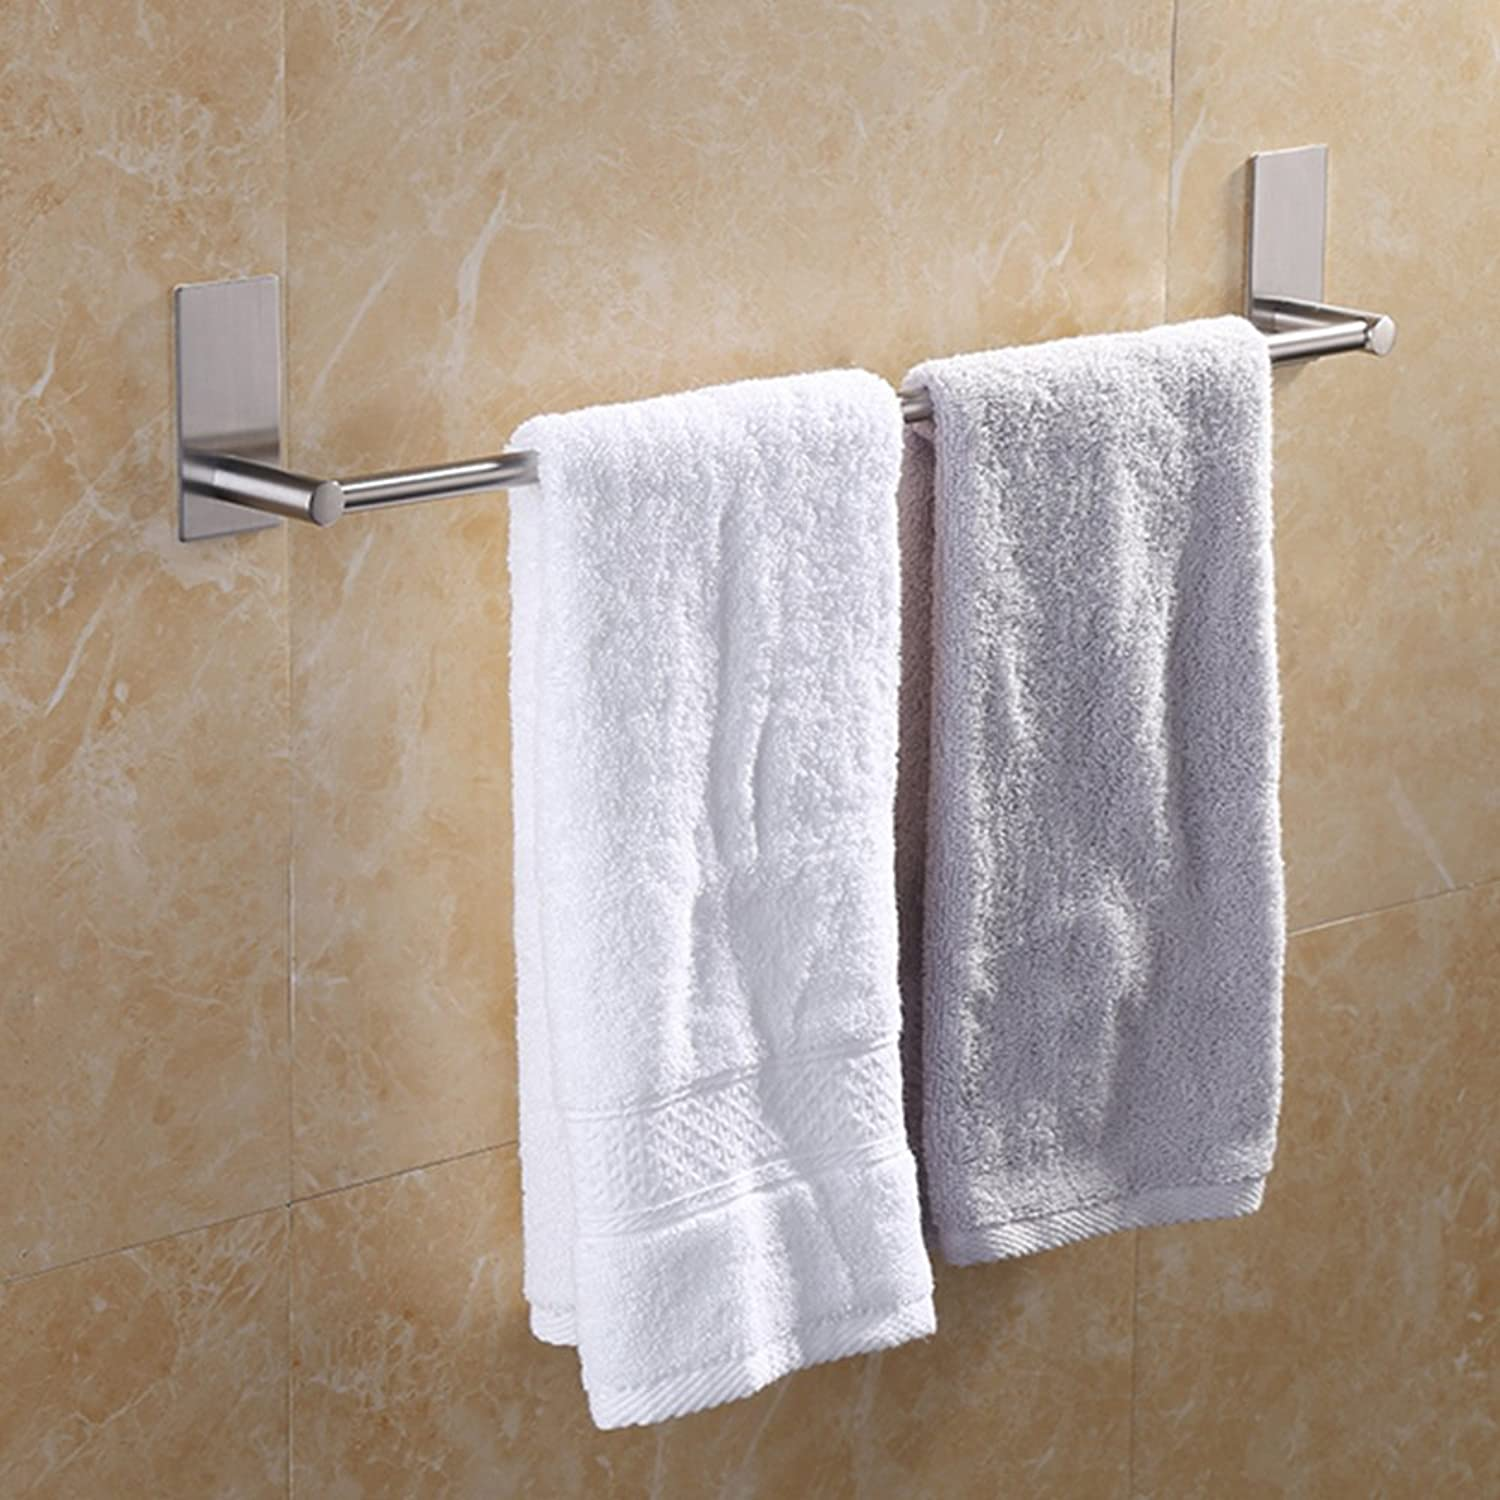 blueecookies Modern Stainless Steel Single Towel Rail Bar Holder Wall Mounted Bath Chrome (40cm)